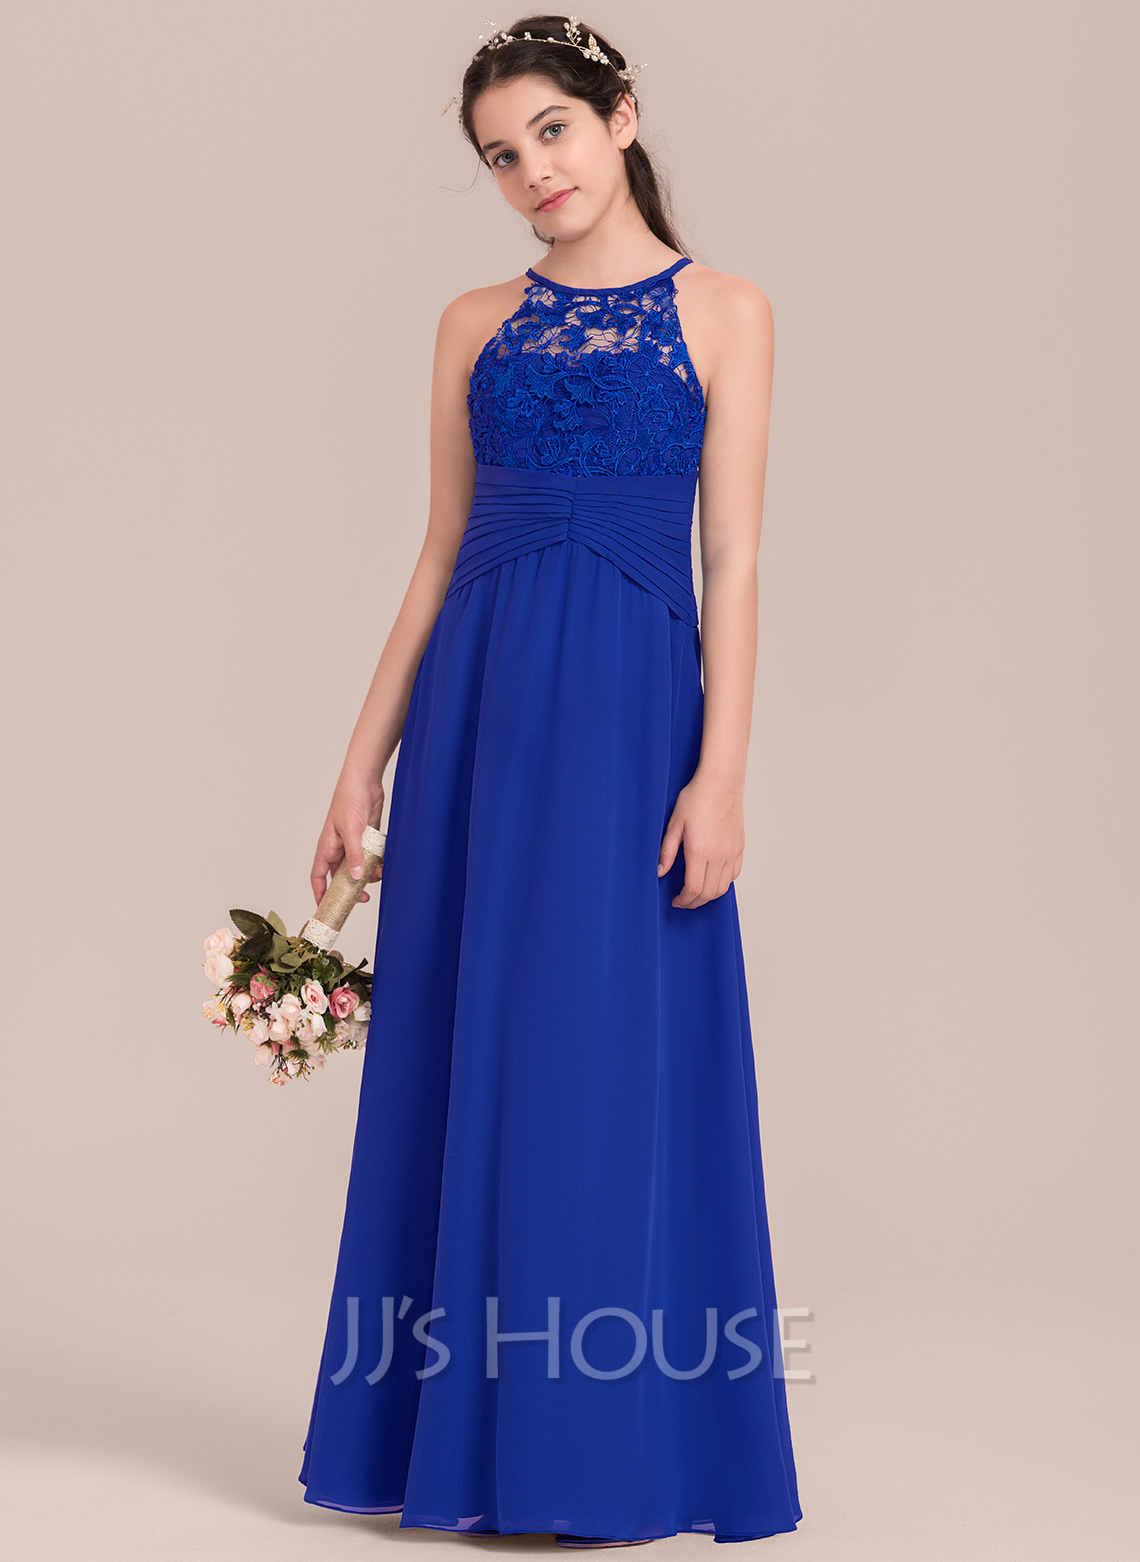 Custom made junior bridesmaid dresses jjshouse a lineprincess scoop neck floor length chiffon junior bridesmaid dress with ruffle ombrellifo Images